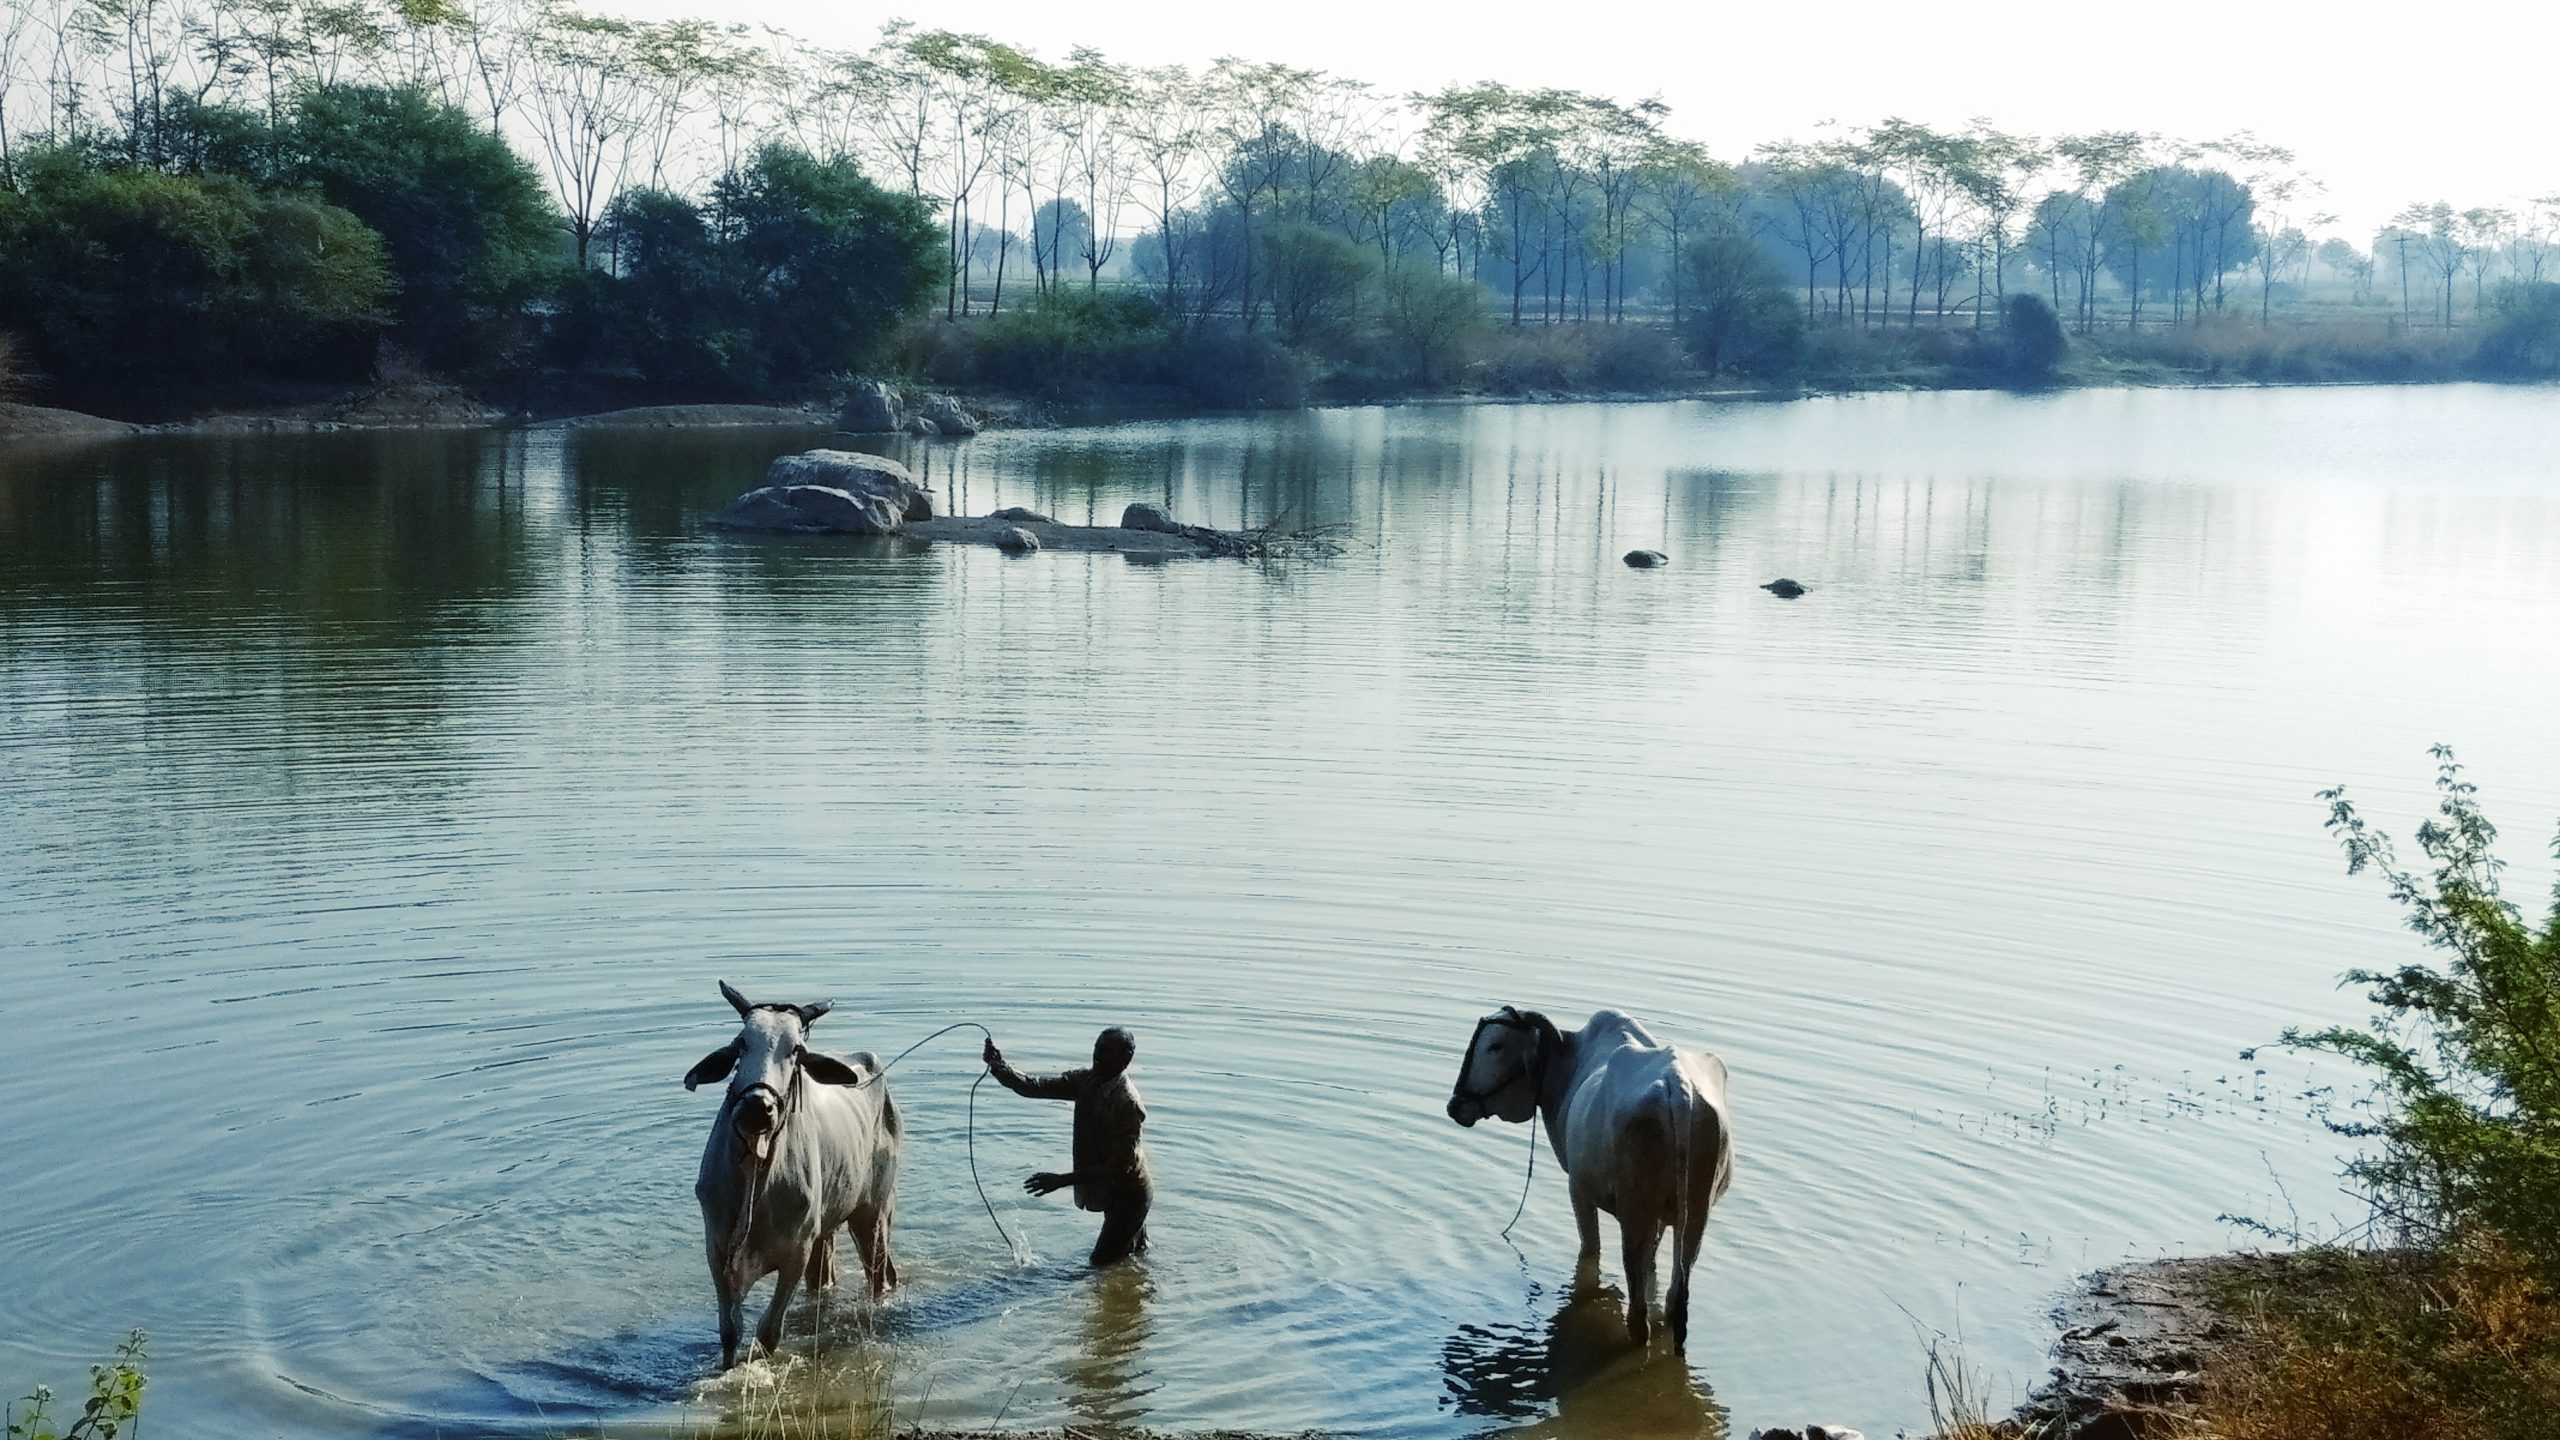 A farmer with his oxen in a lake